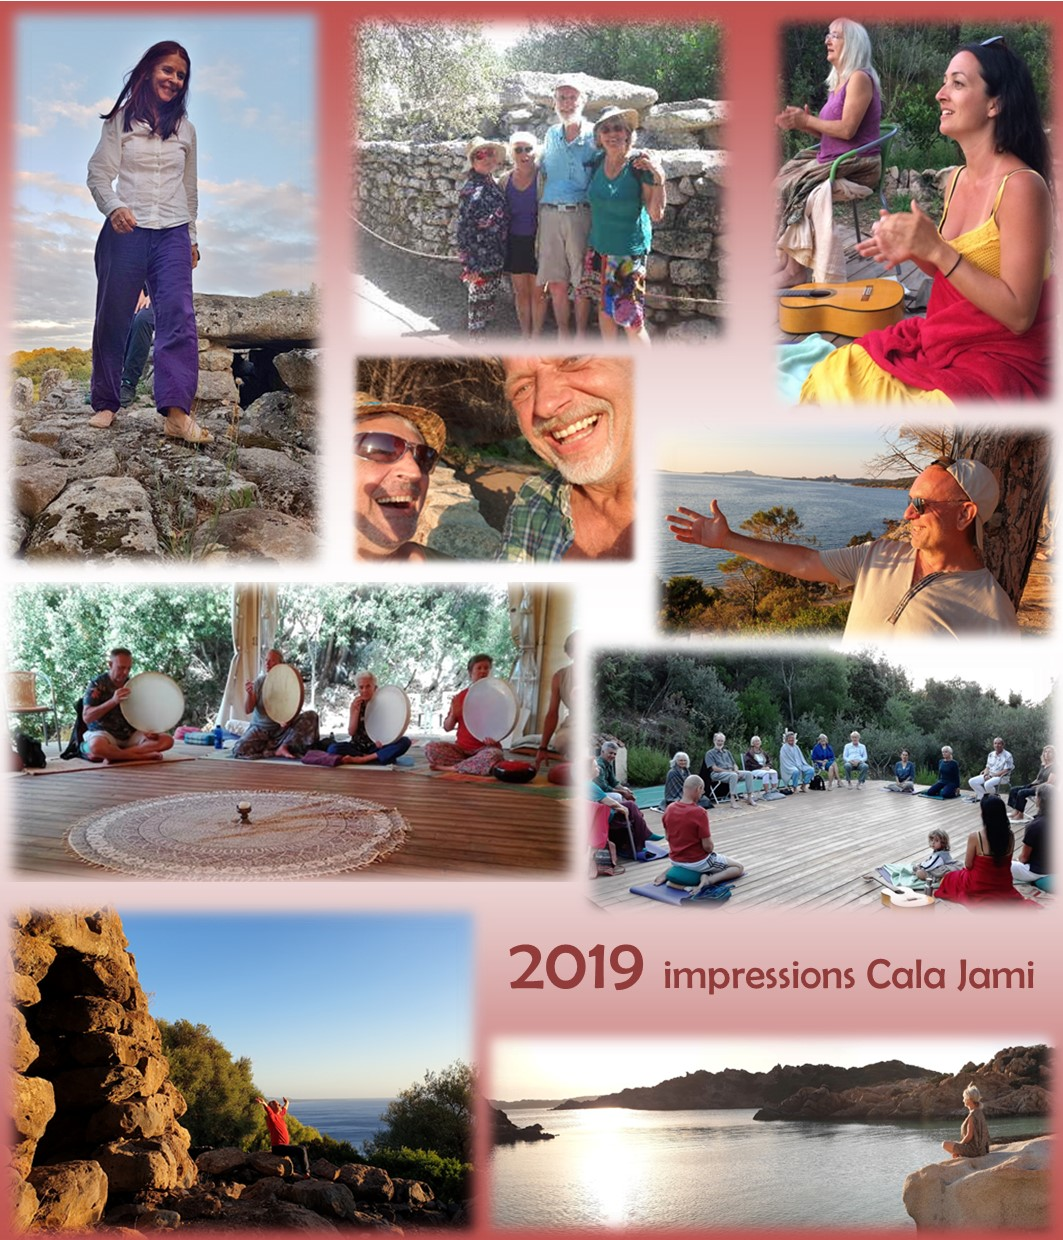 2019 - a great year in Sufi mediation center Cala Jami Sardinia